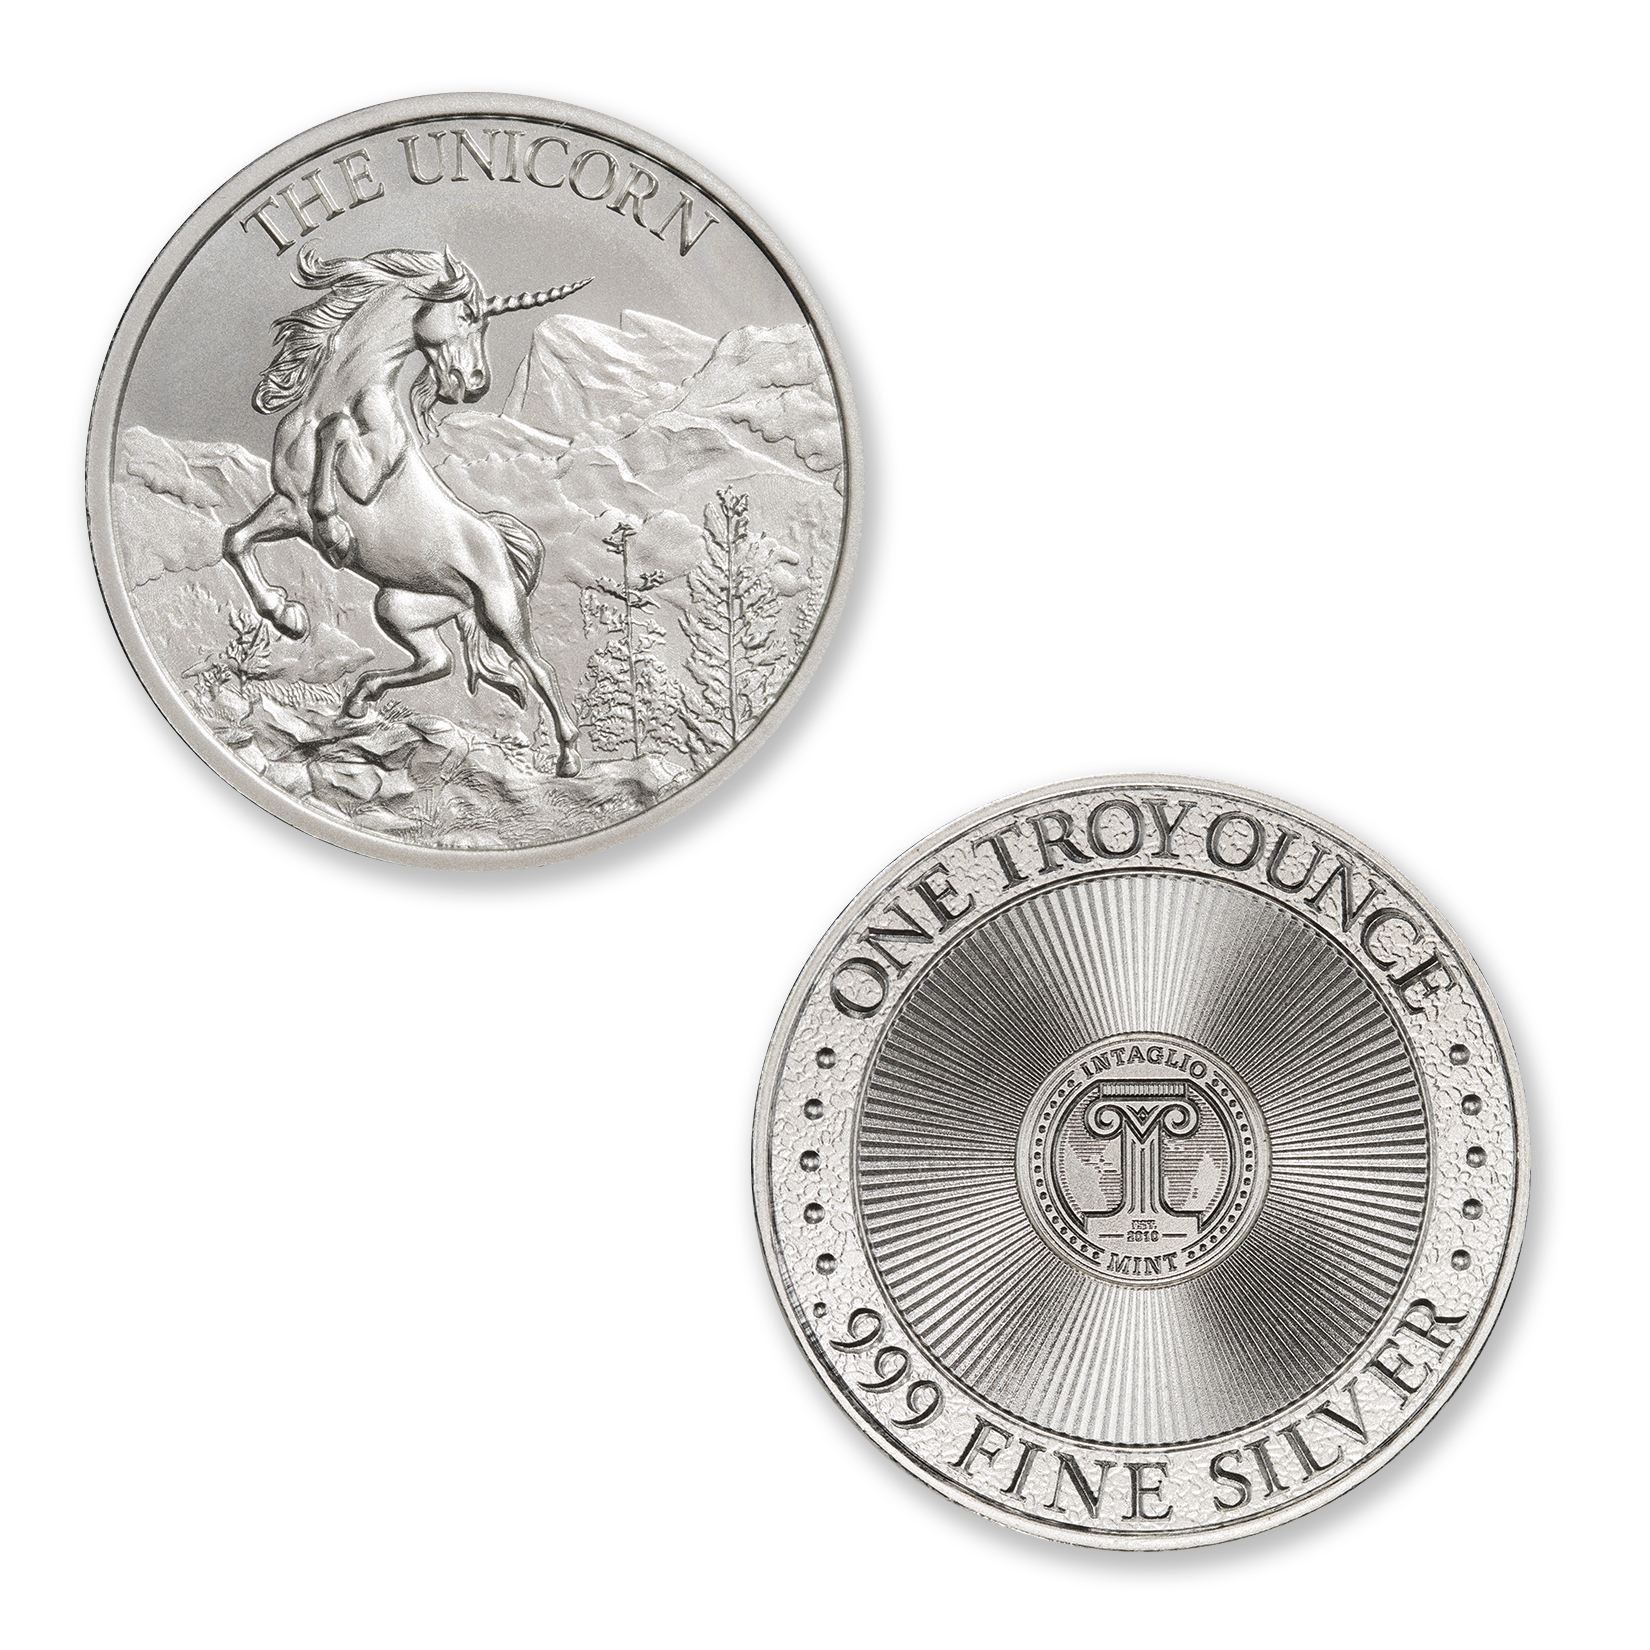 THE UNICORN – 1 TROY OUNCE – 39MM